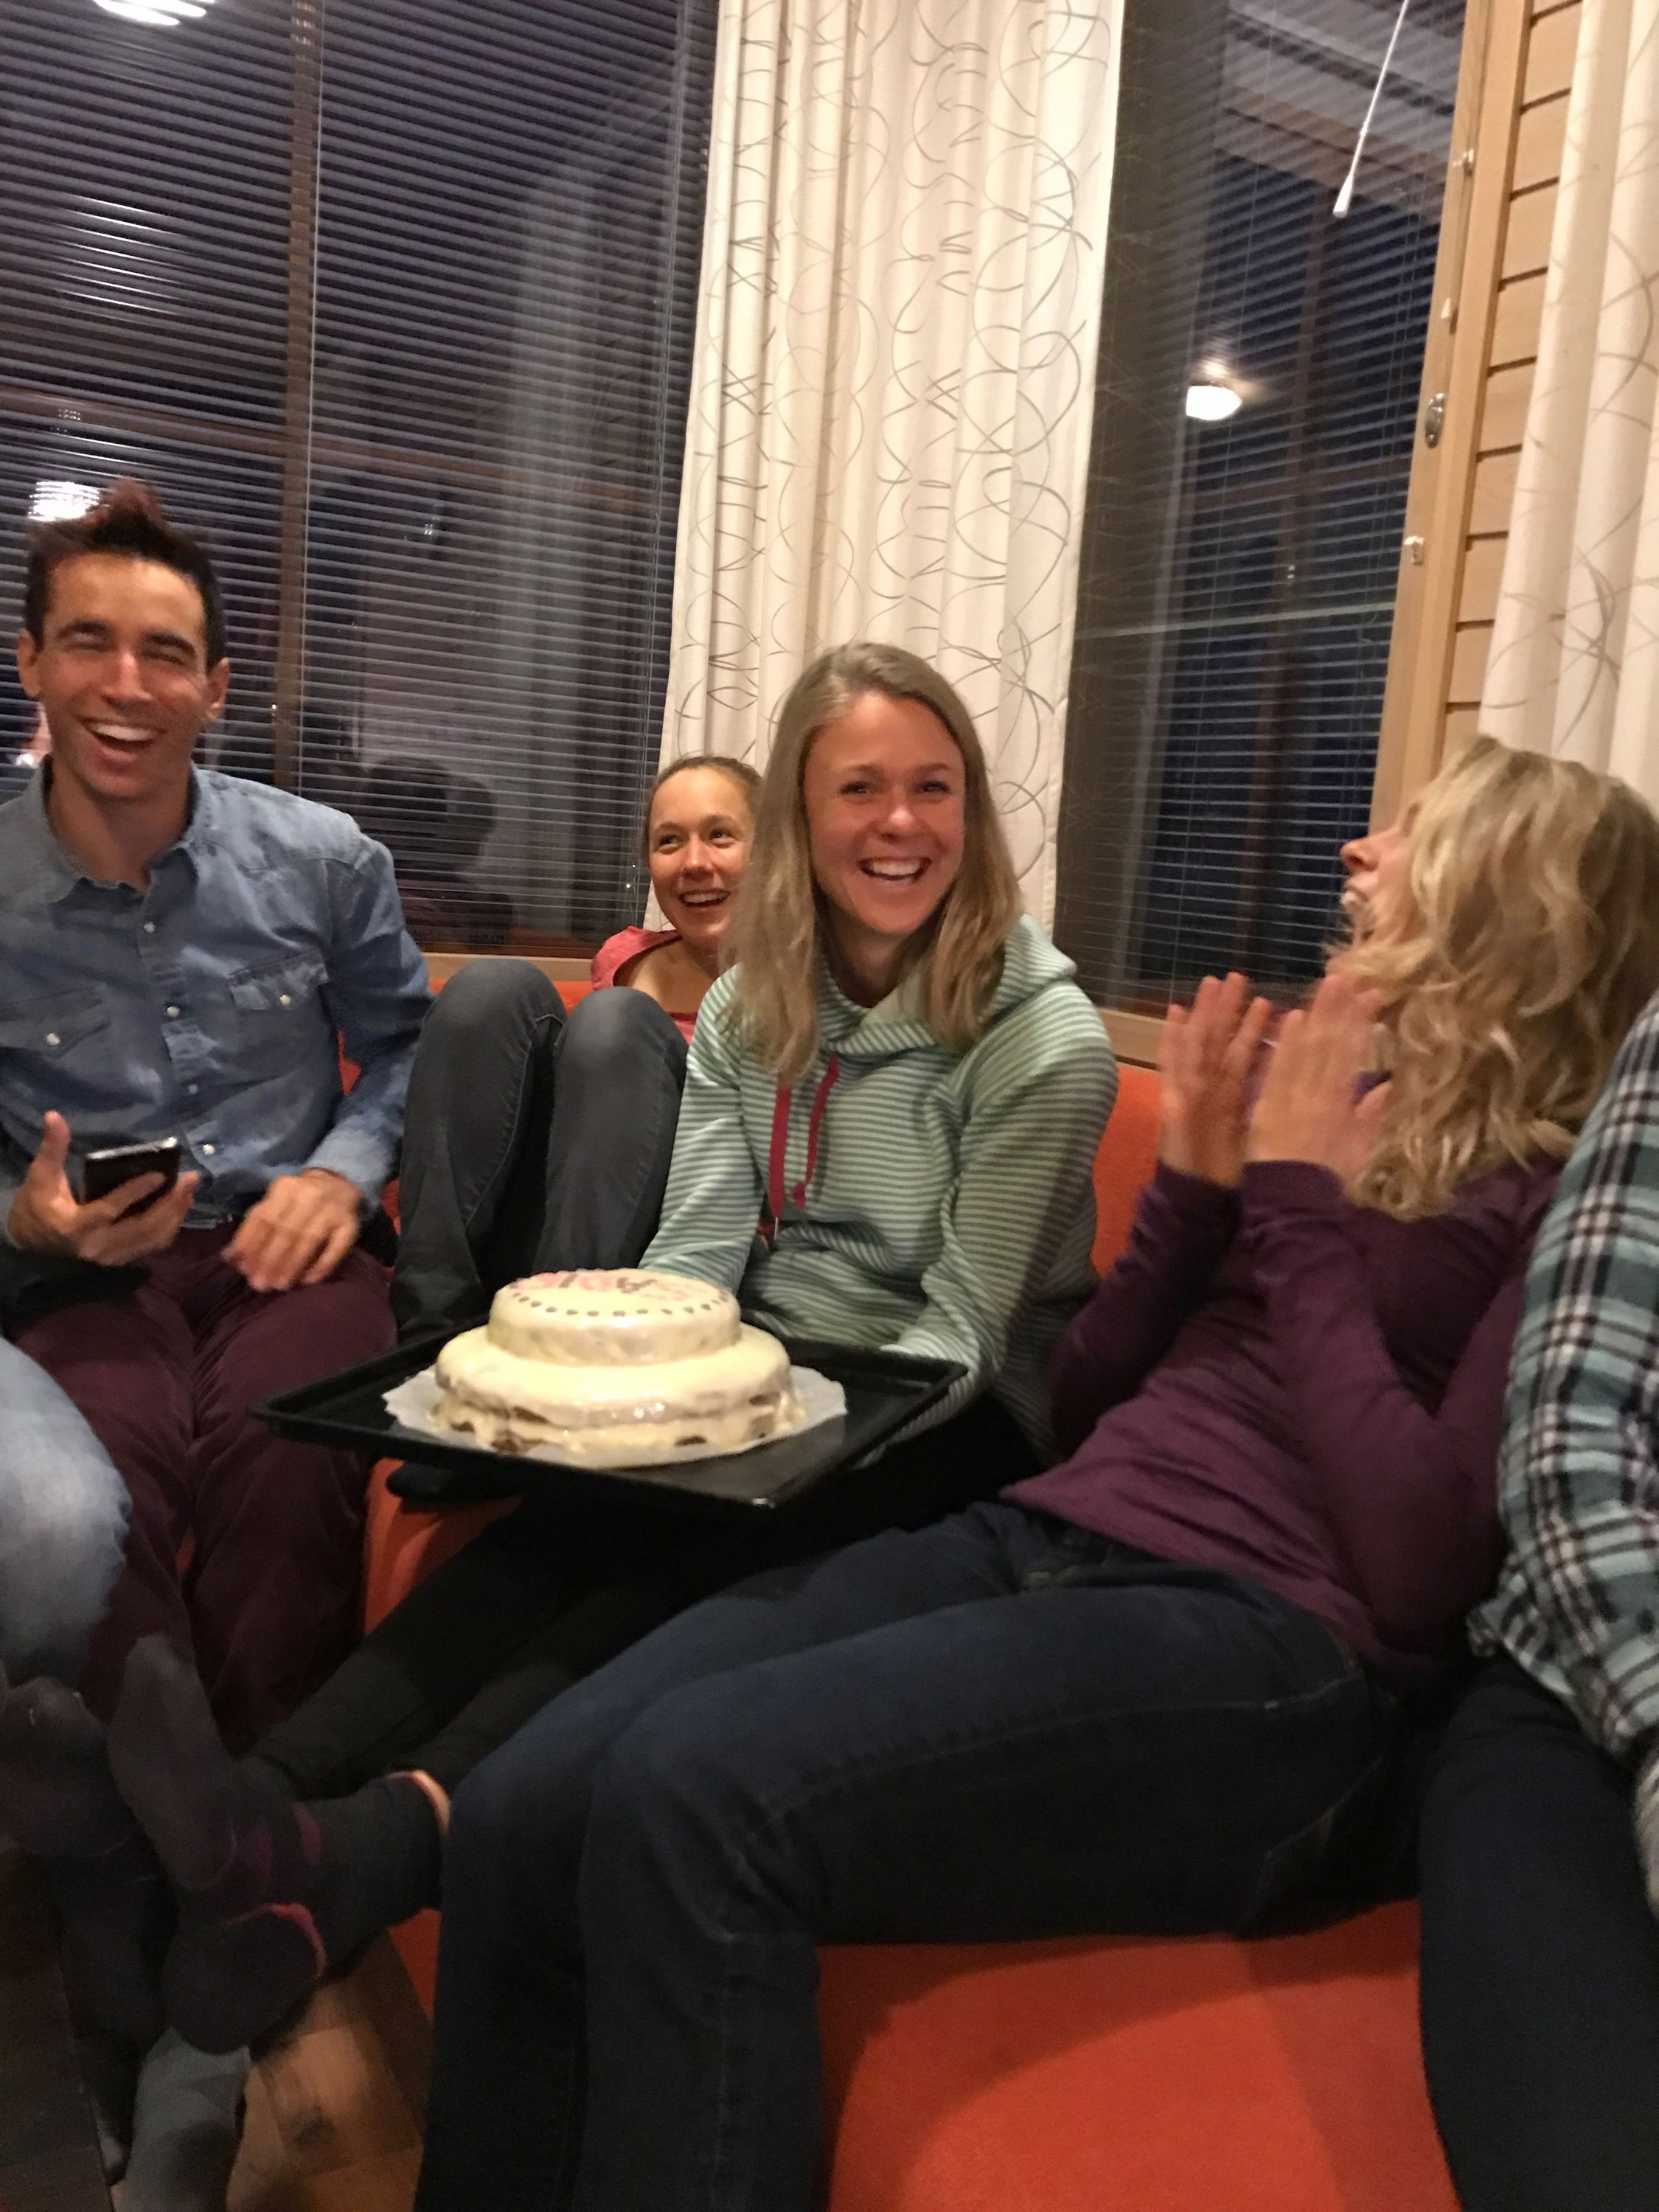 Celebrating my 27th birthday with my teammates and this wonderfully delicious cake Caitlin Patterson made me in Finland.